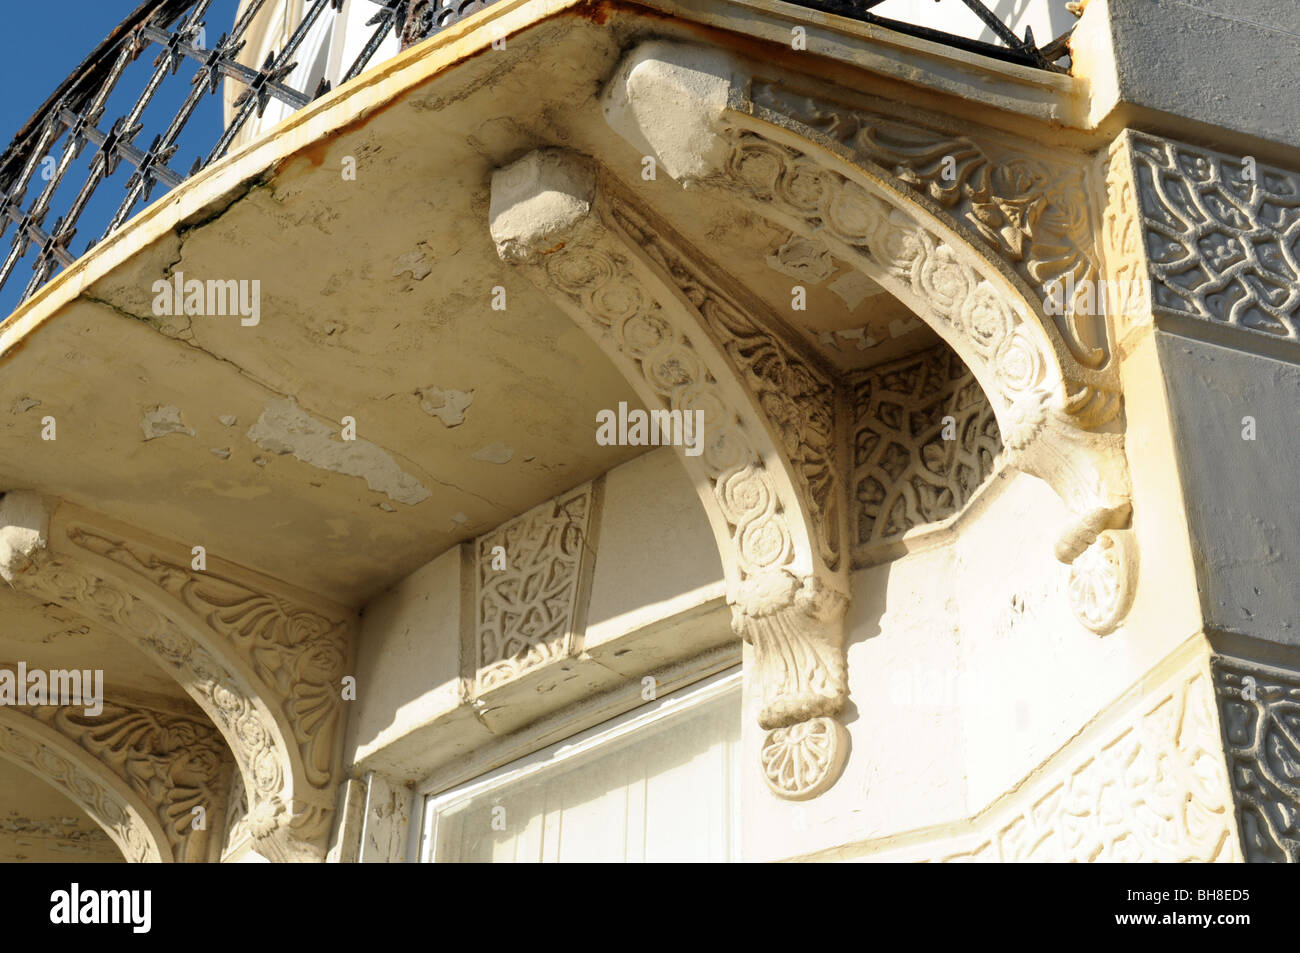 Ornate cornice on a townhouse - Stock Image